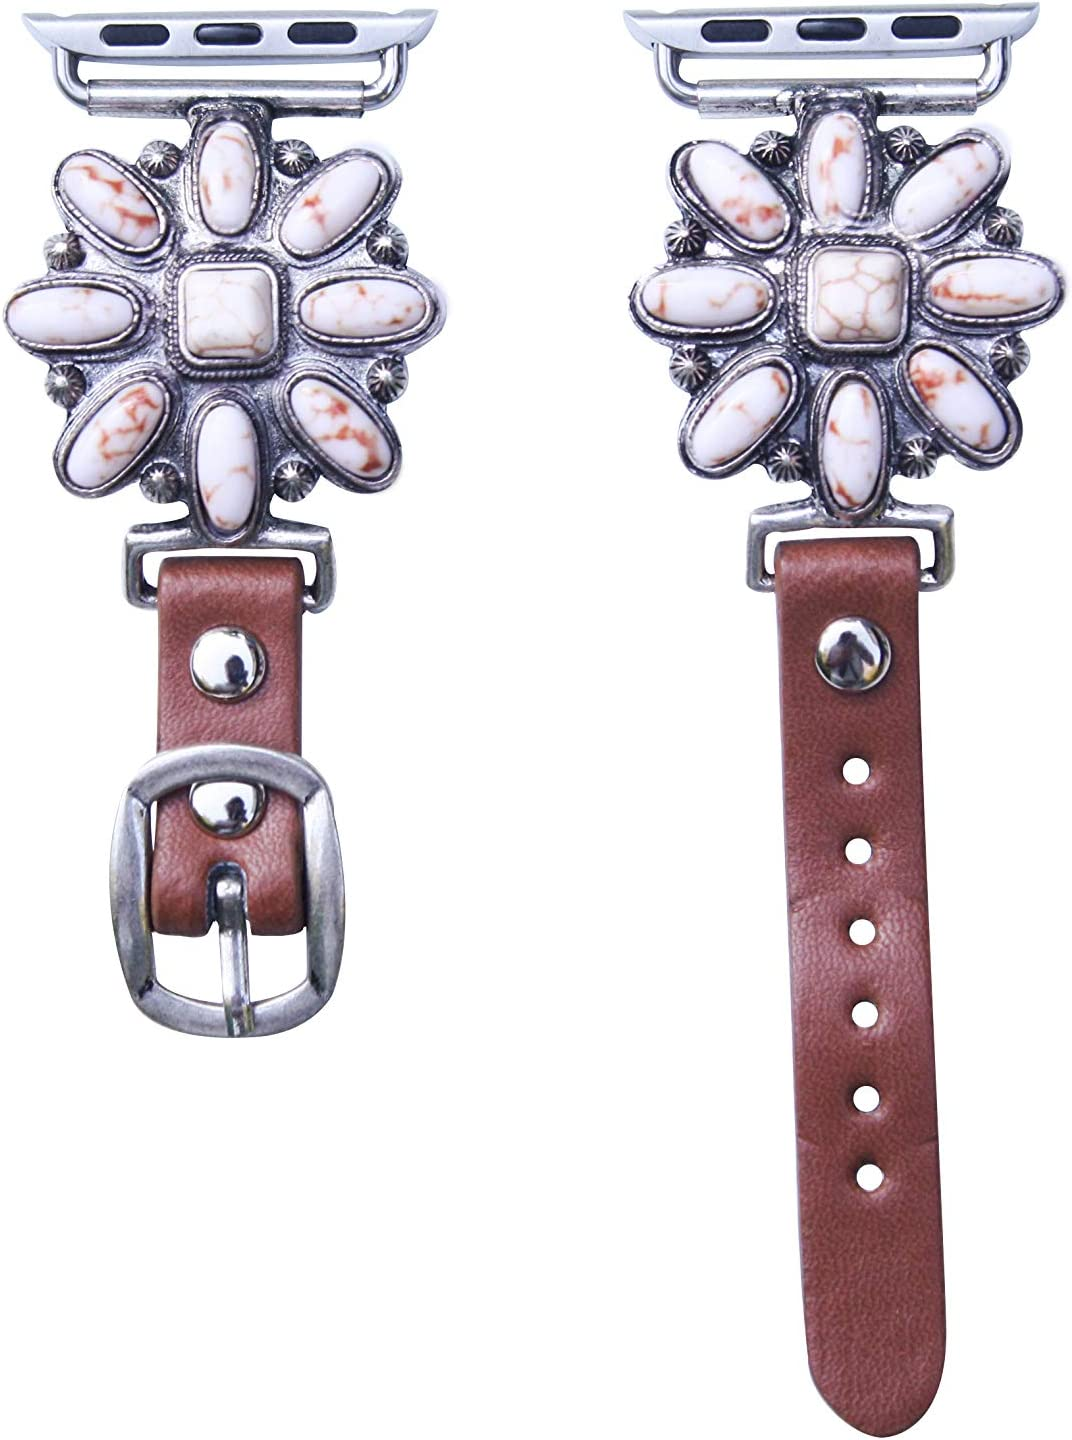 40mm/38mm Compatible for Apple Watch, Delicate Western White Abstract Flower Watch Band No. 27W